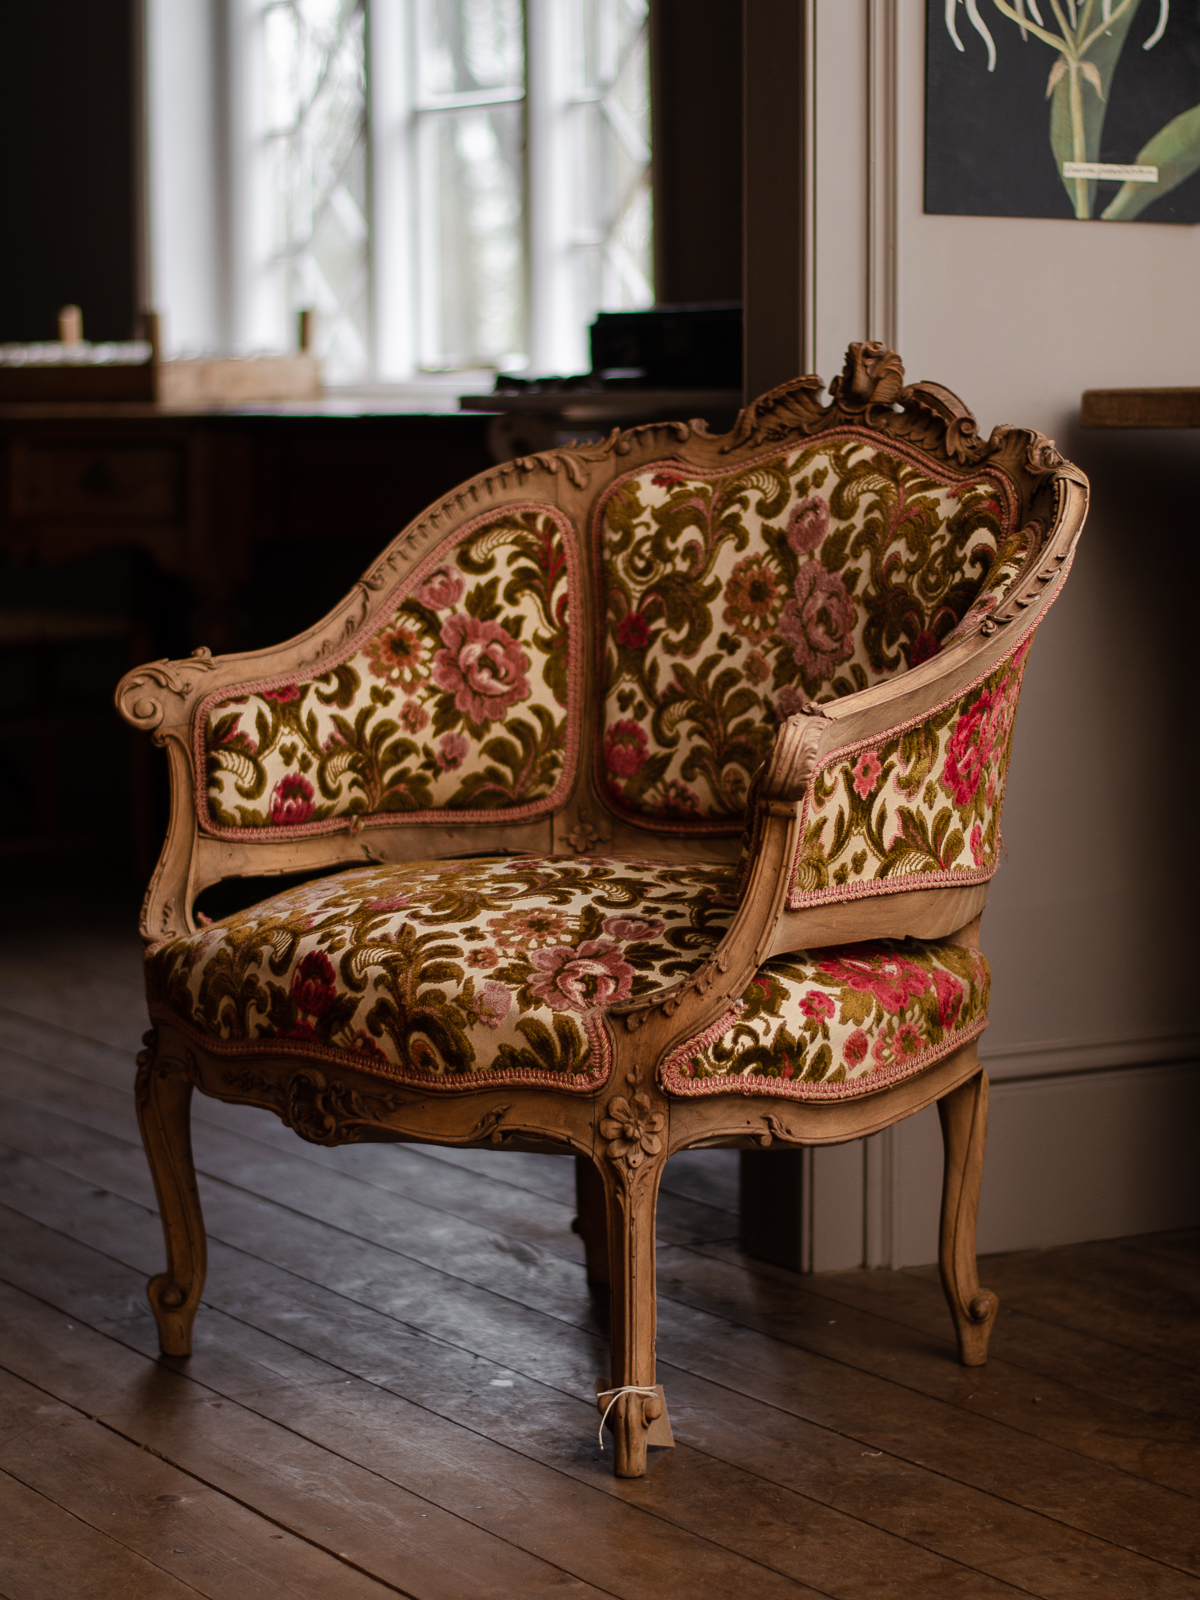 Flower Patterned Chair